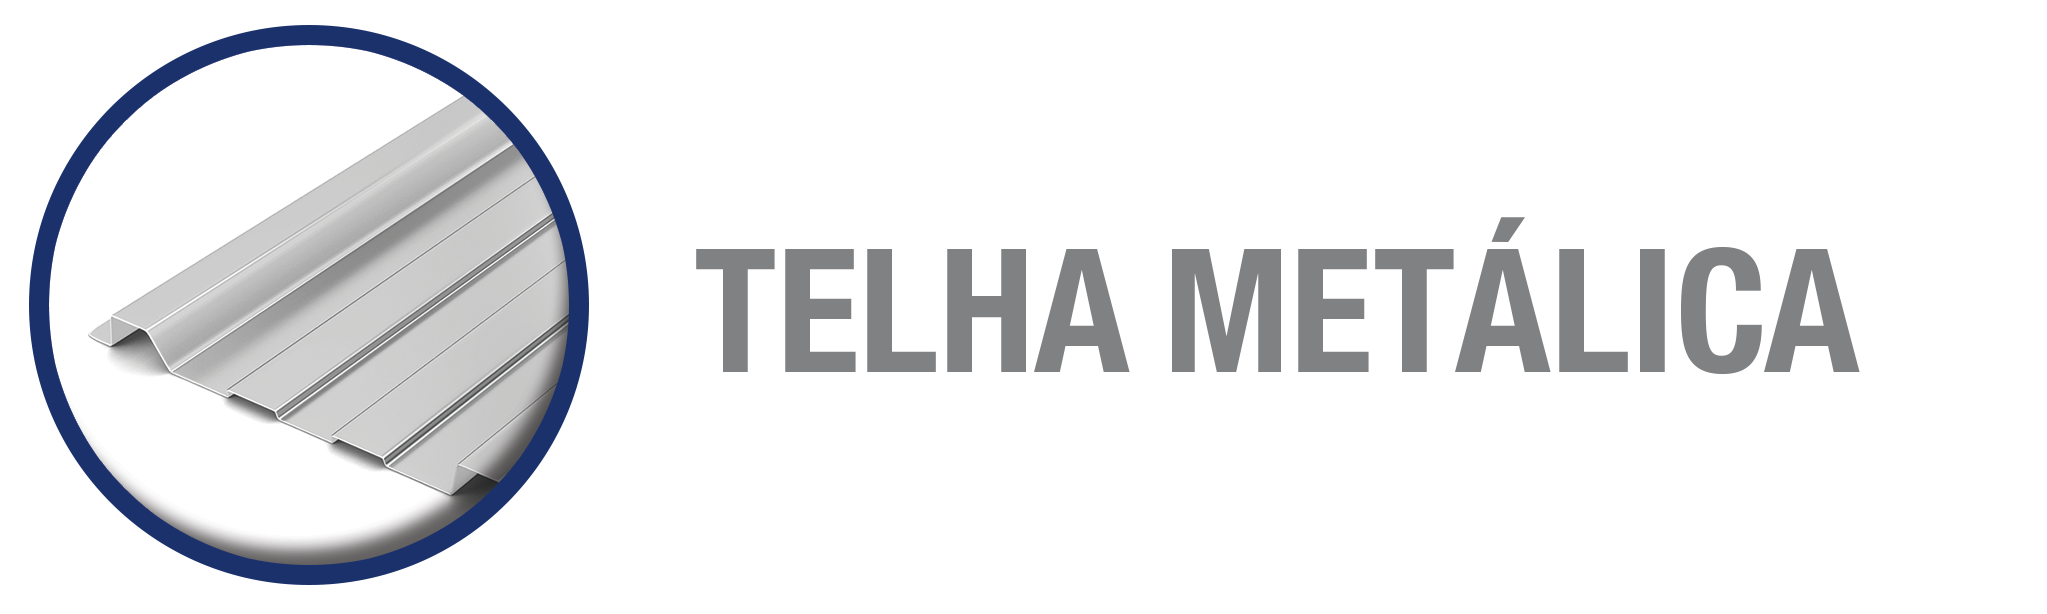 Icone_TELHA_METALICA